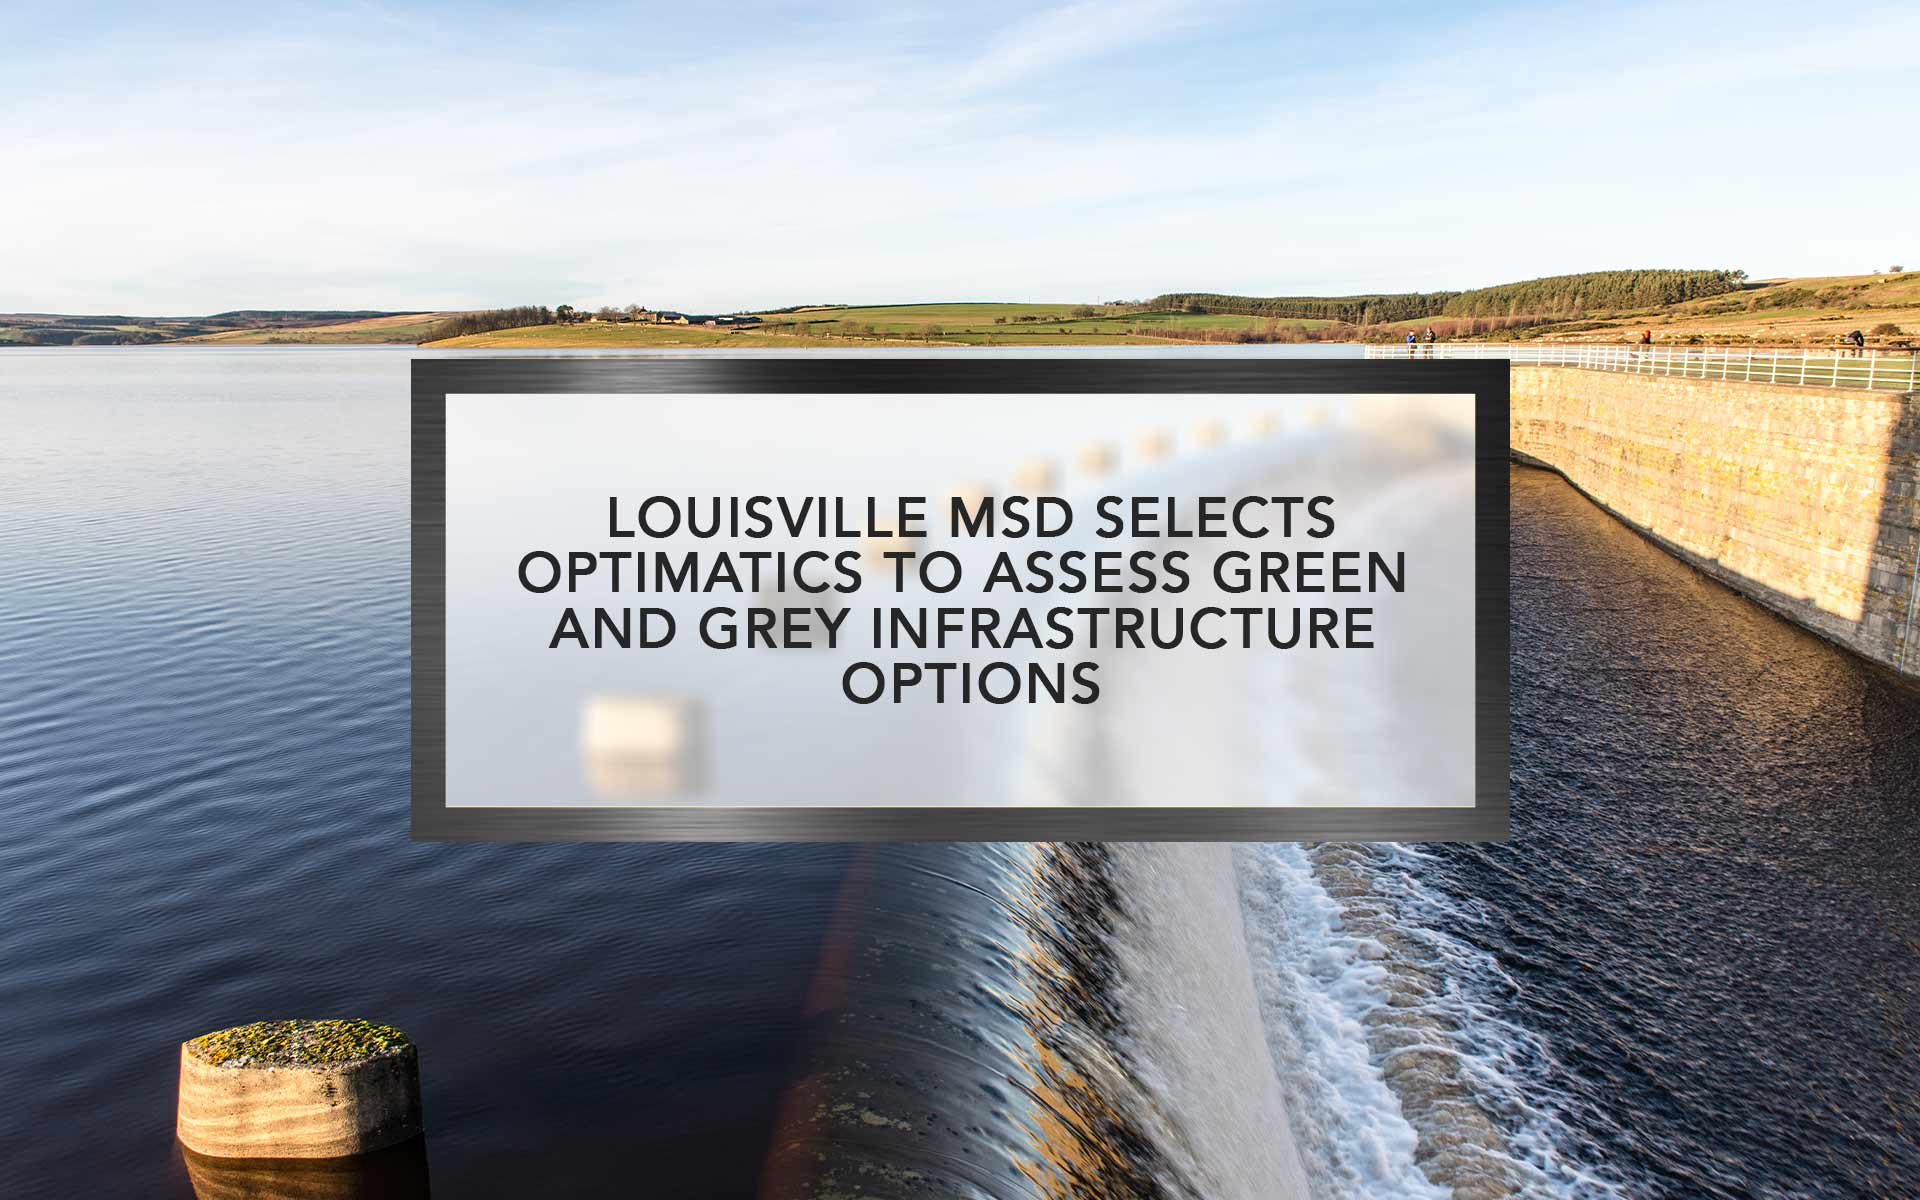 Louisville MSD Selects Optimatics to Assess Green and Grey Infrastructure Options